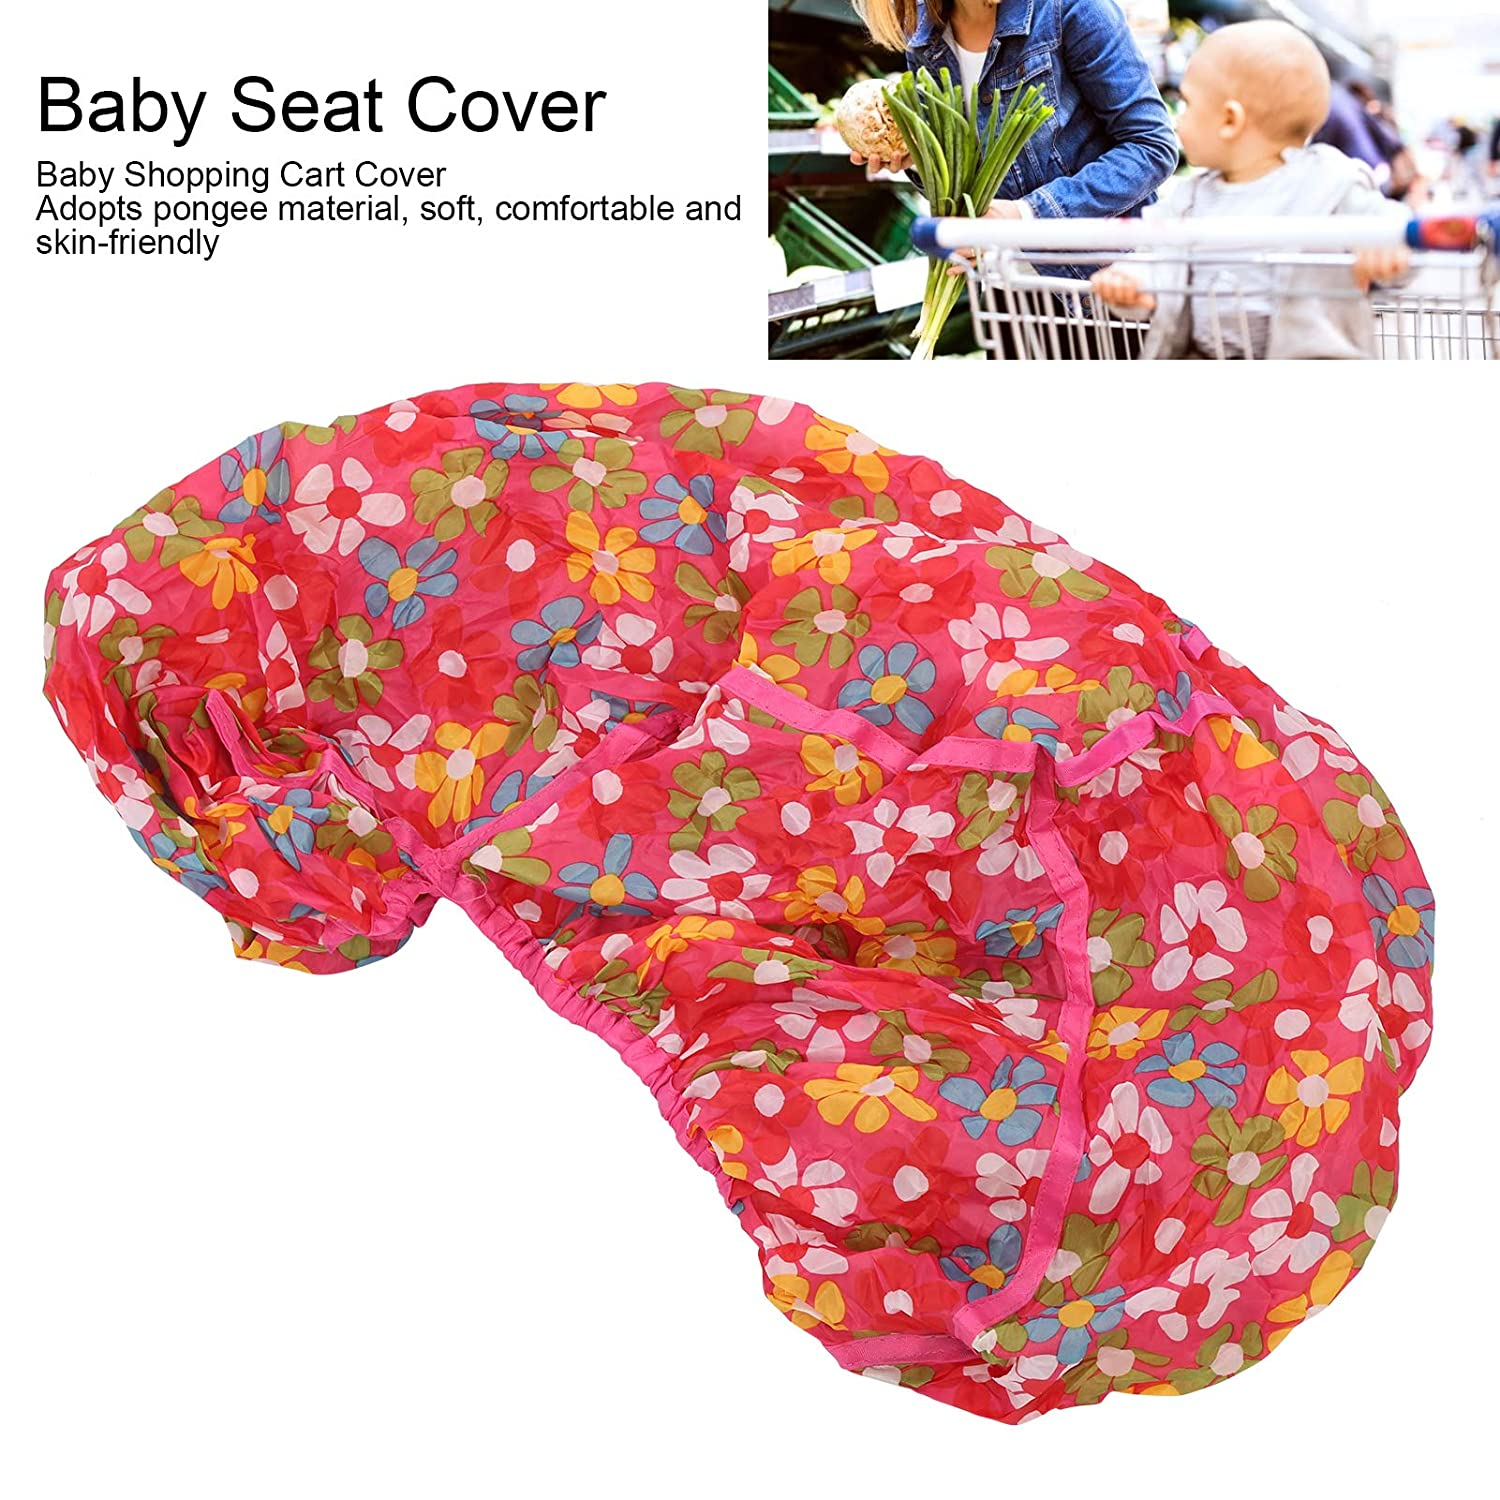 Baby Chair Cushion, Shopping Cart Cover, Soft Universal Environmentally Friendly Portable Safe for Infant Baby Kids(Red Floral)